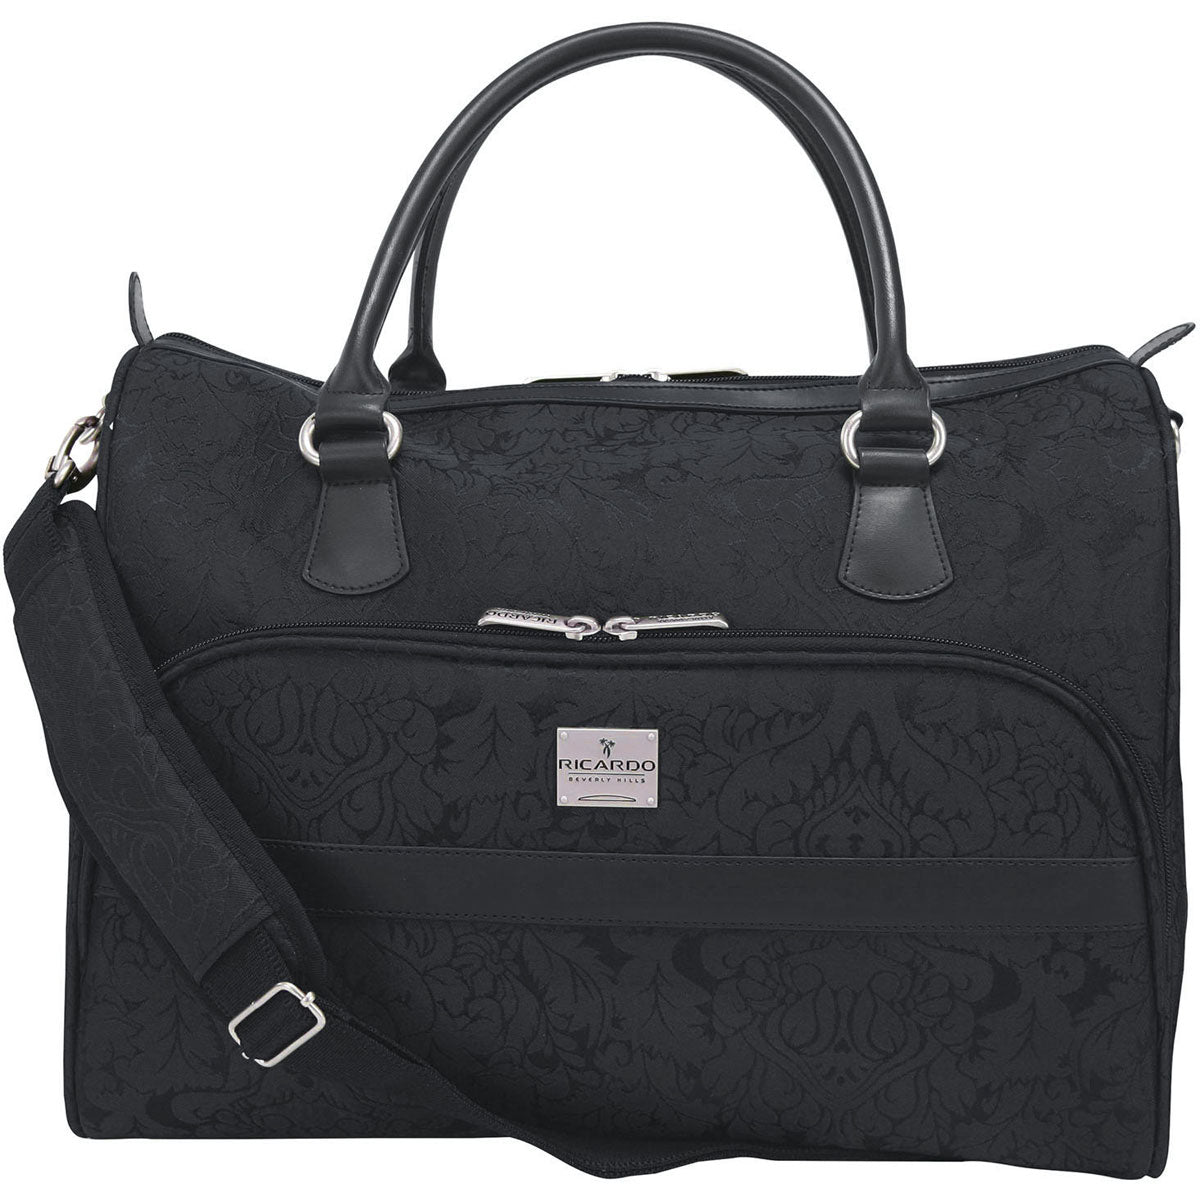 Ricardo Beverly Hills Imperial 16in City Tote Bag